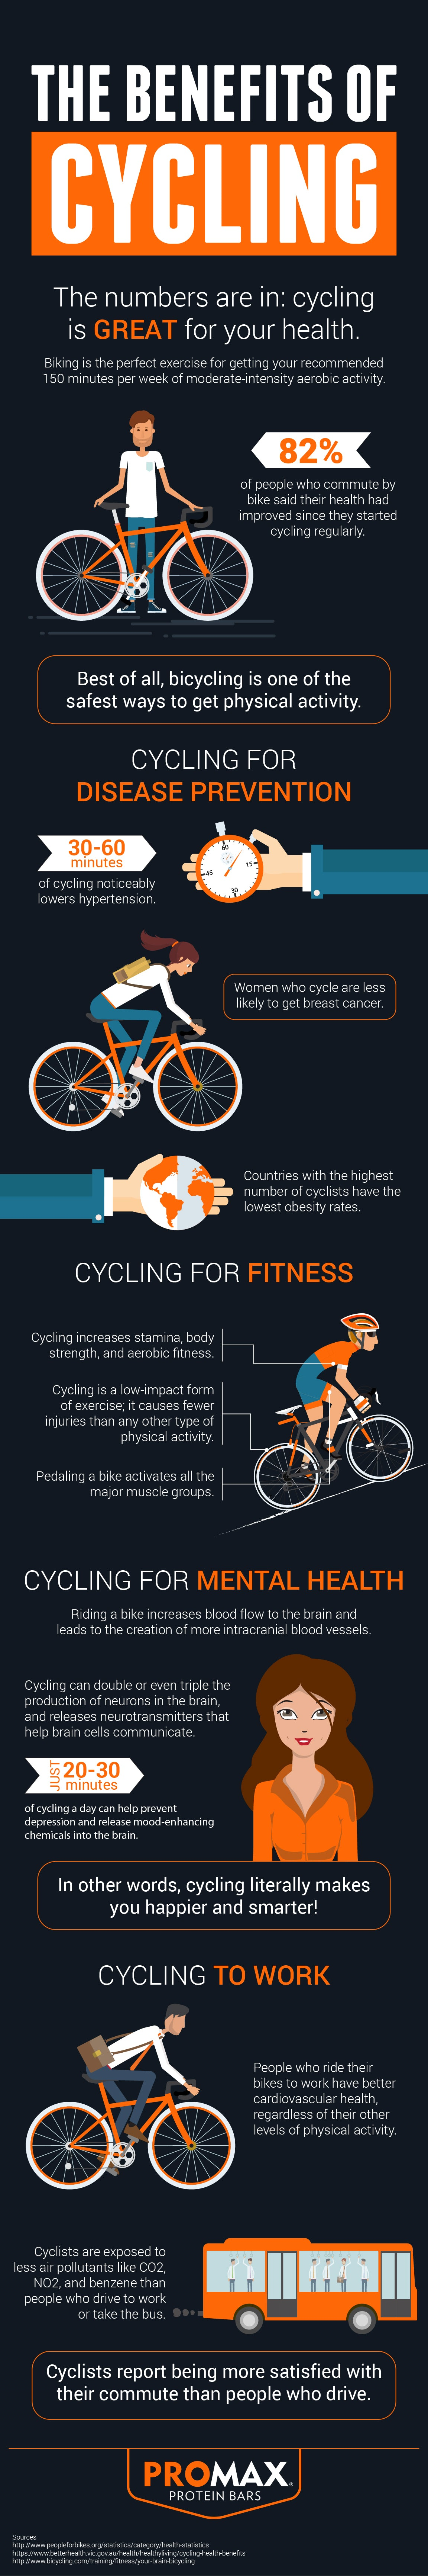 The Benefits of Cycling Infographic